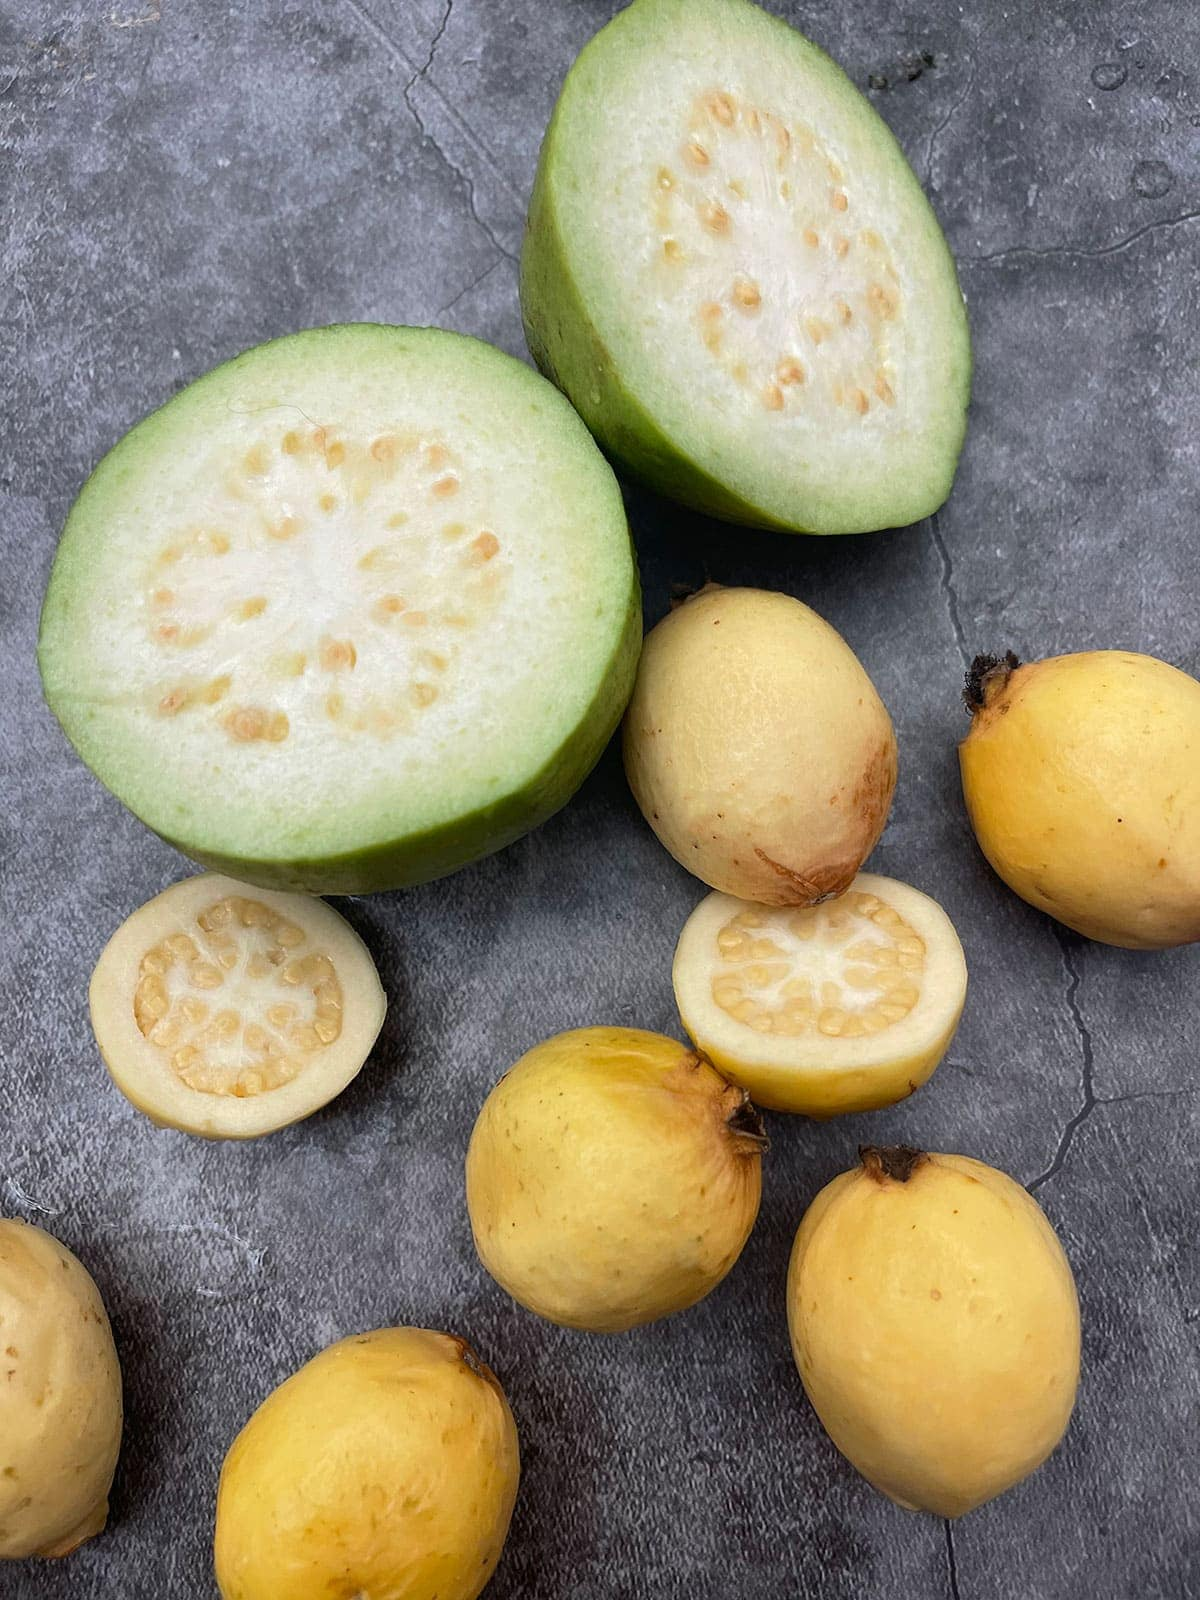 White guava and yellow guava on a grey background